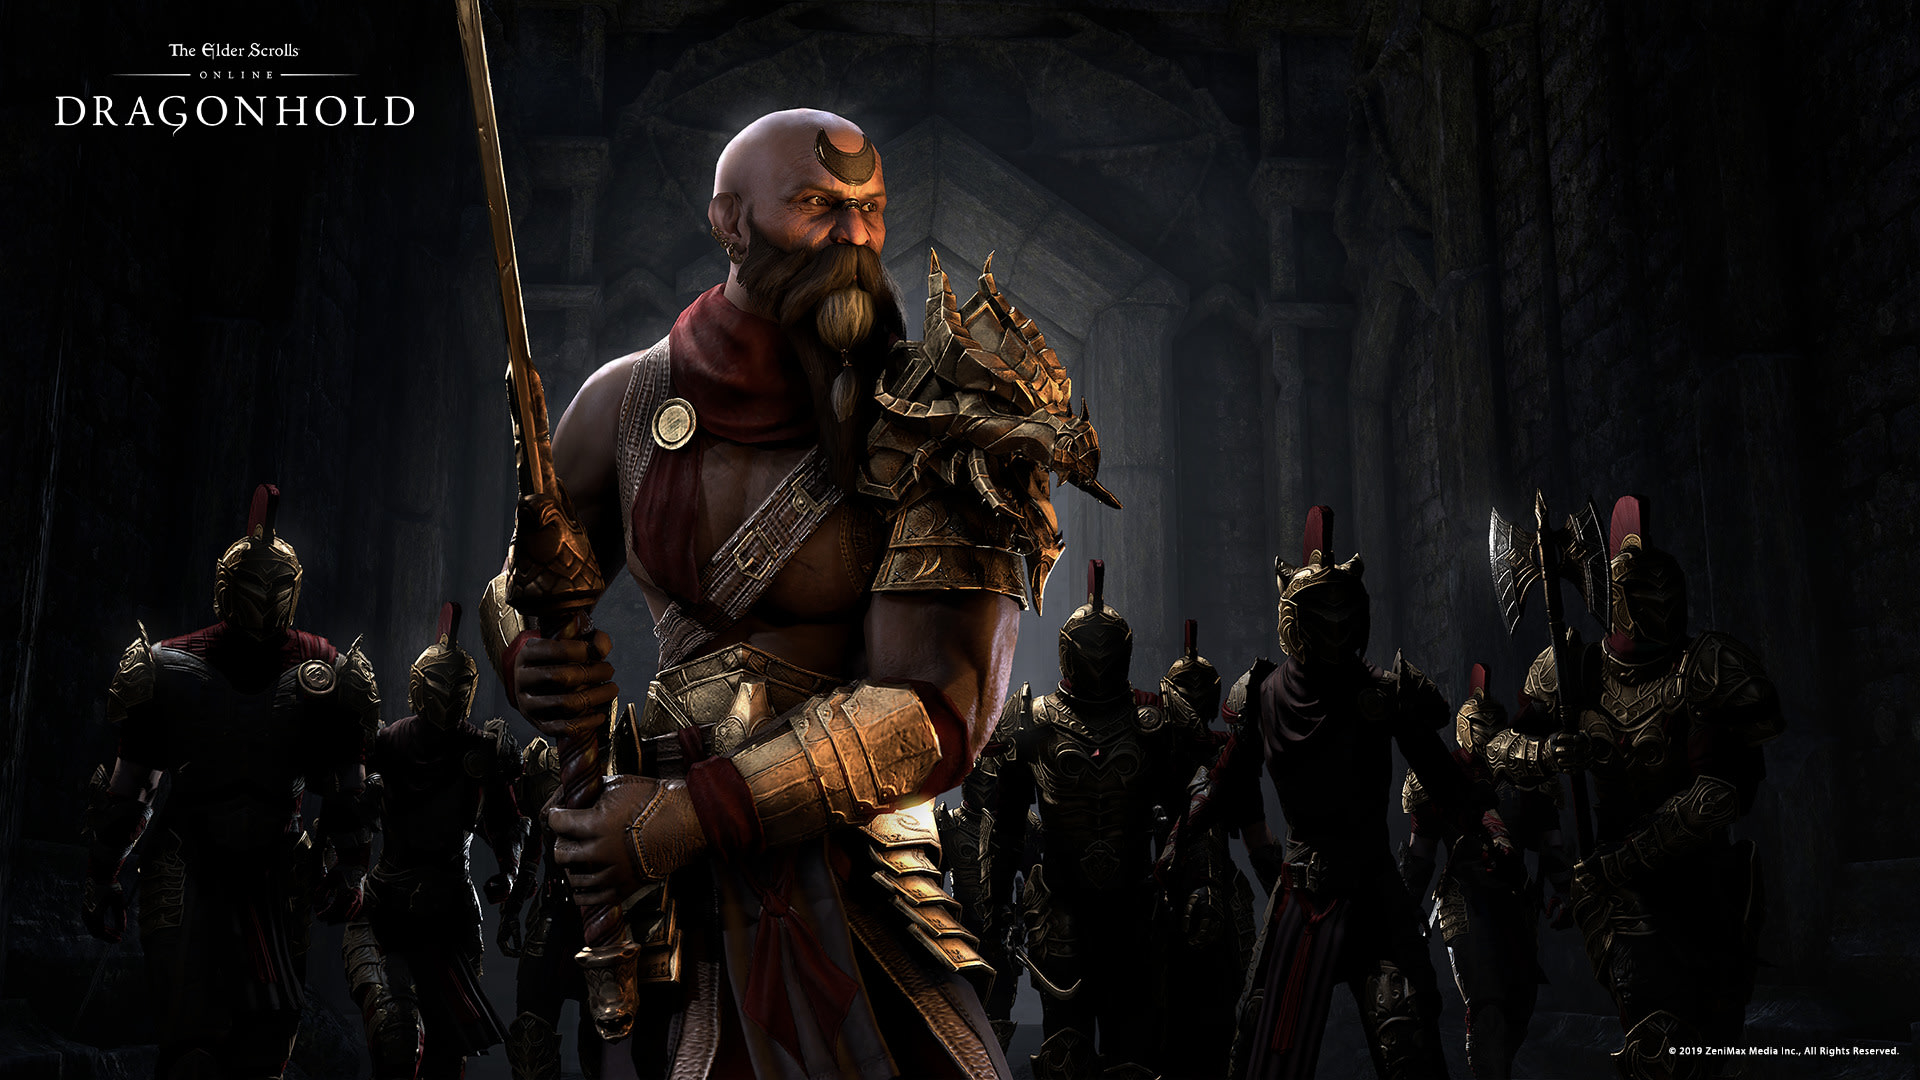 The Elder Scrolls Online Game Wallpaper Hd Games 4k Wallpapers Images Photos And Background